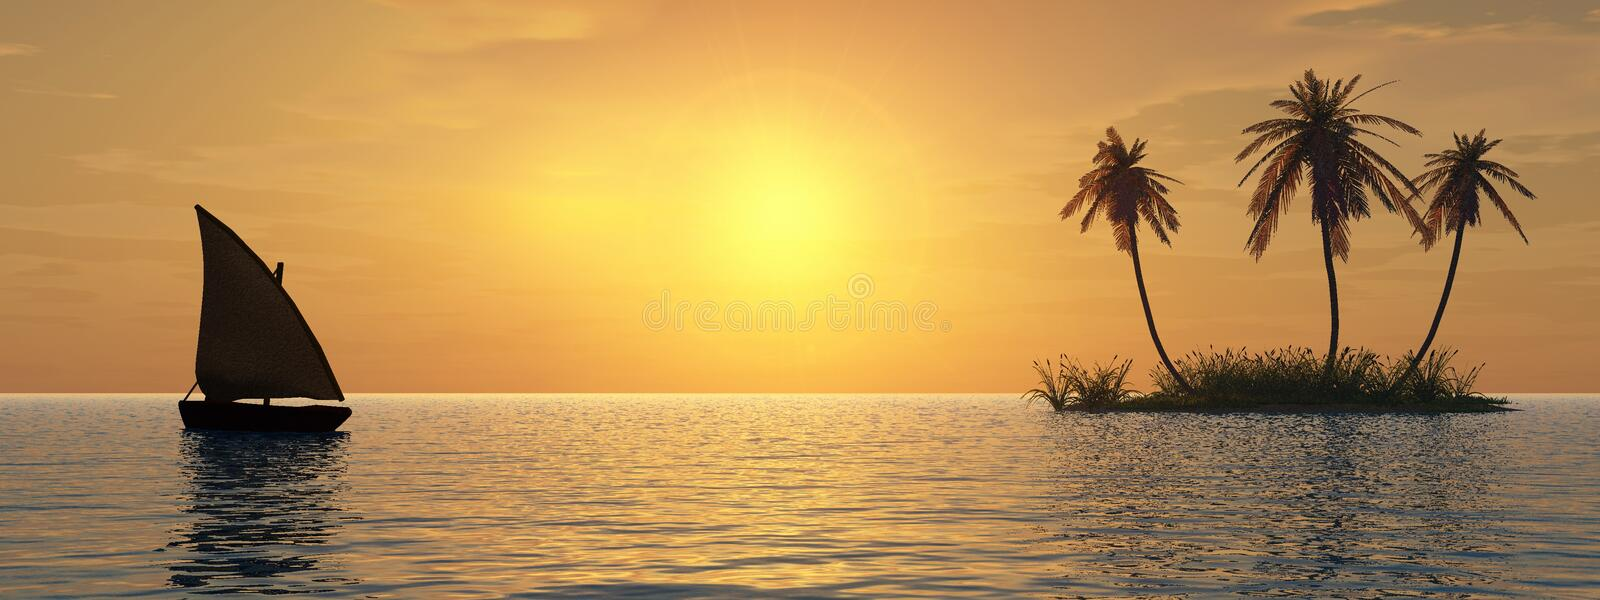 Island and boat. Sunset coconut palm trees on island and small boat - 3d illustration stock illustration